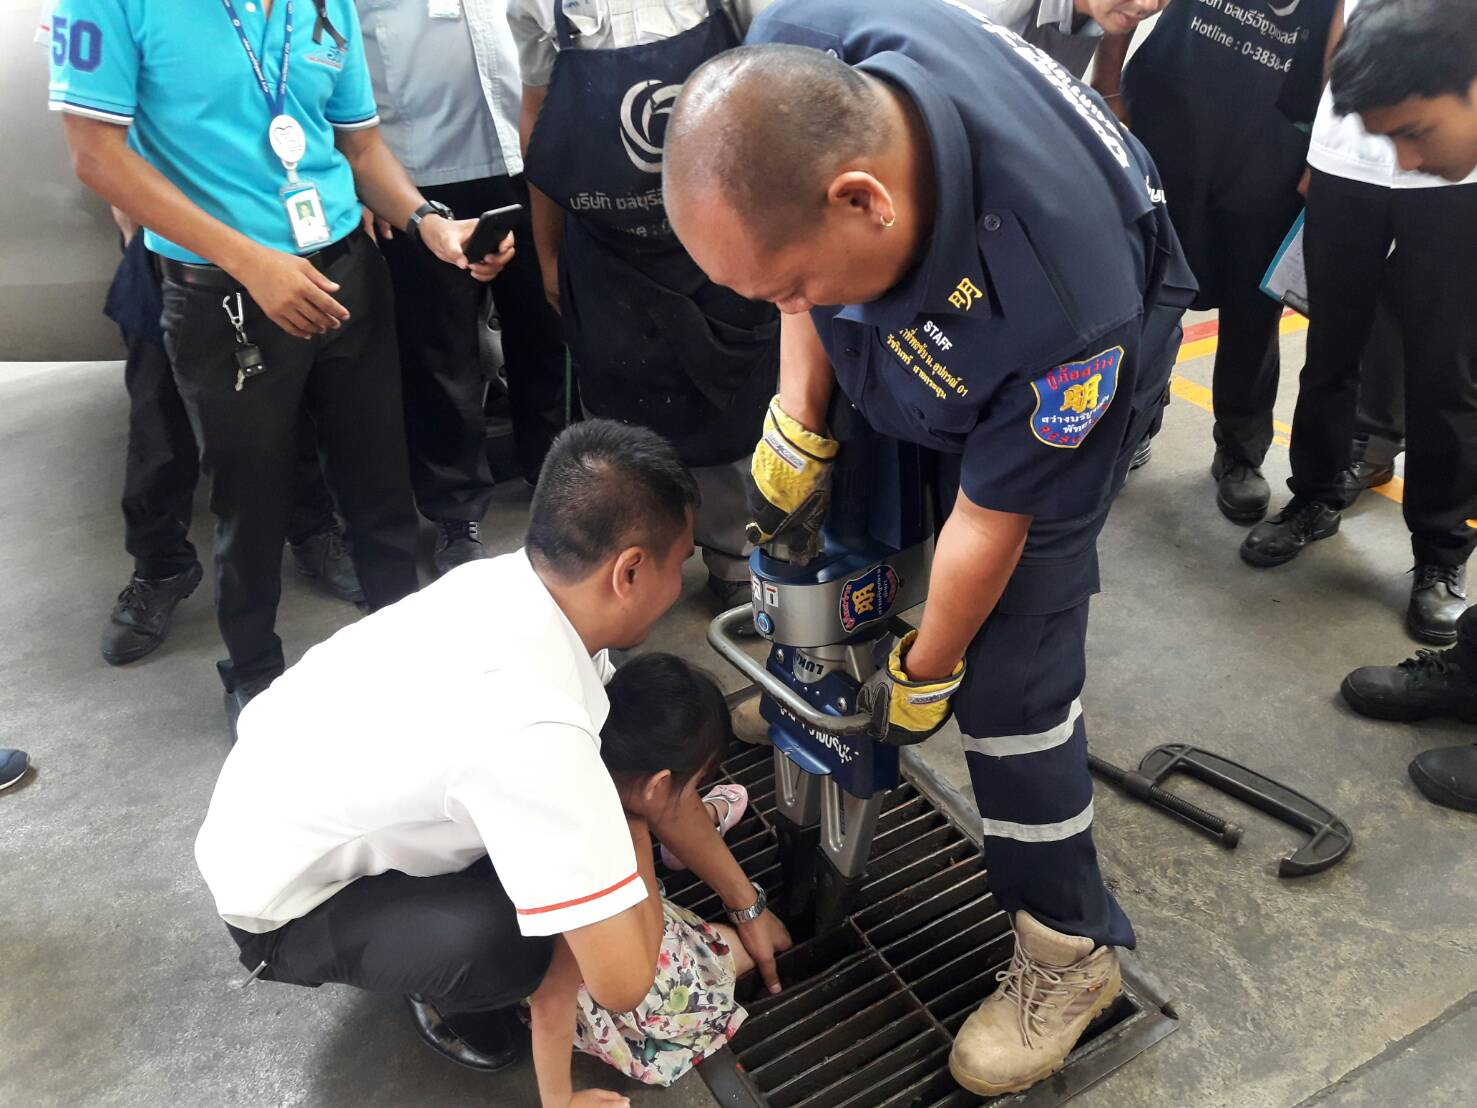 A 6-year-old girl escaped serious injury after getting her leg stuck in a grated drain cover.